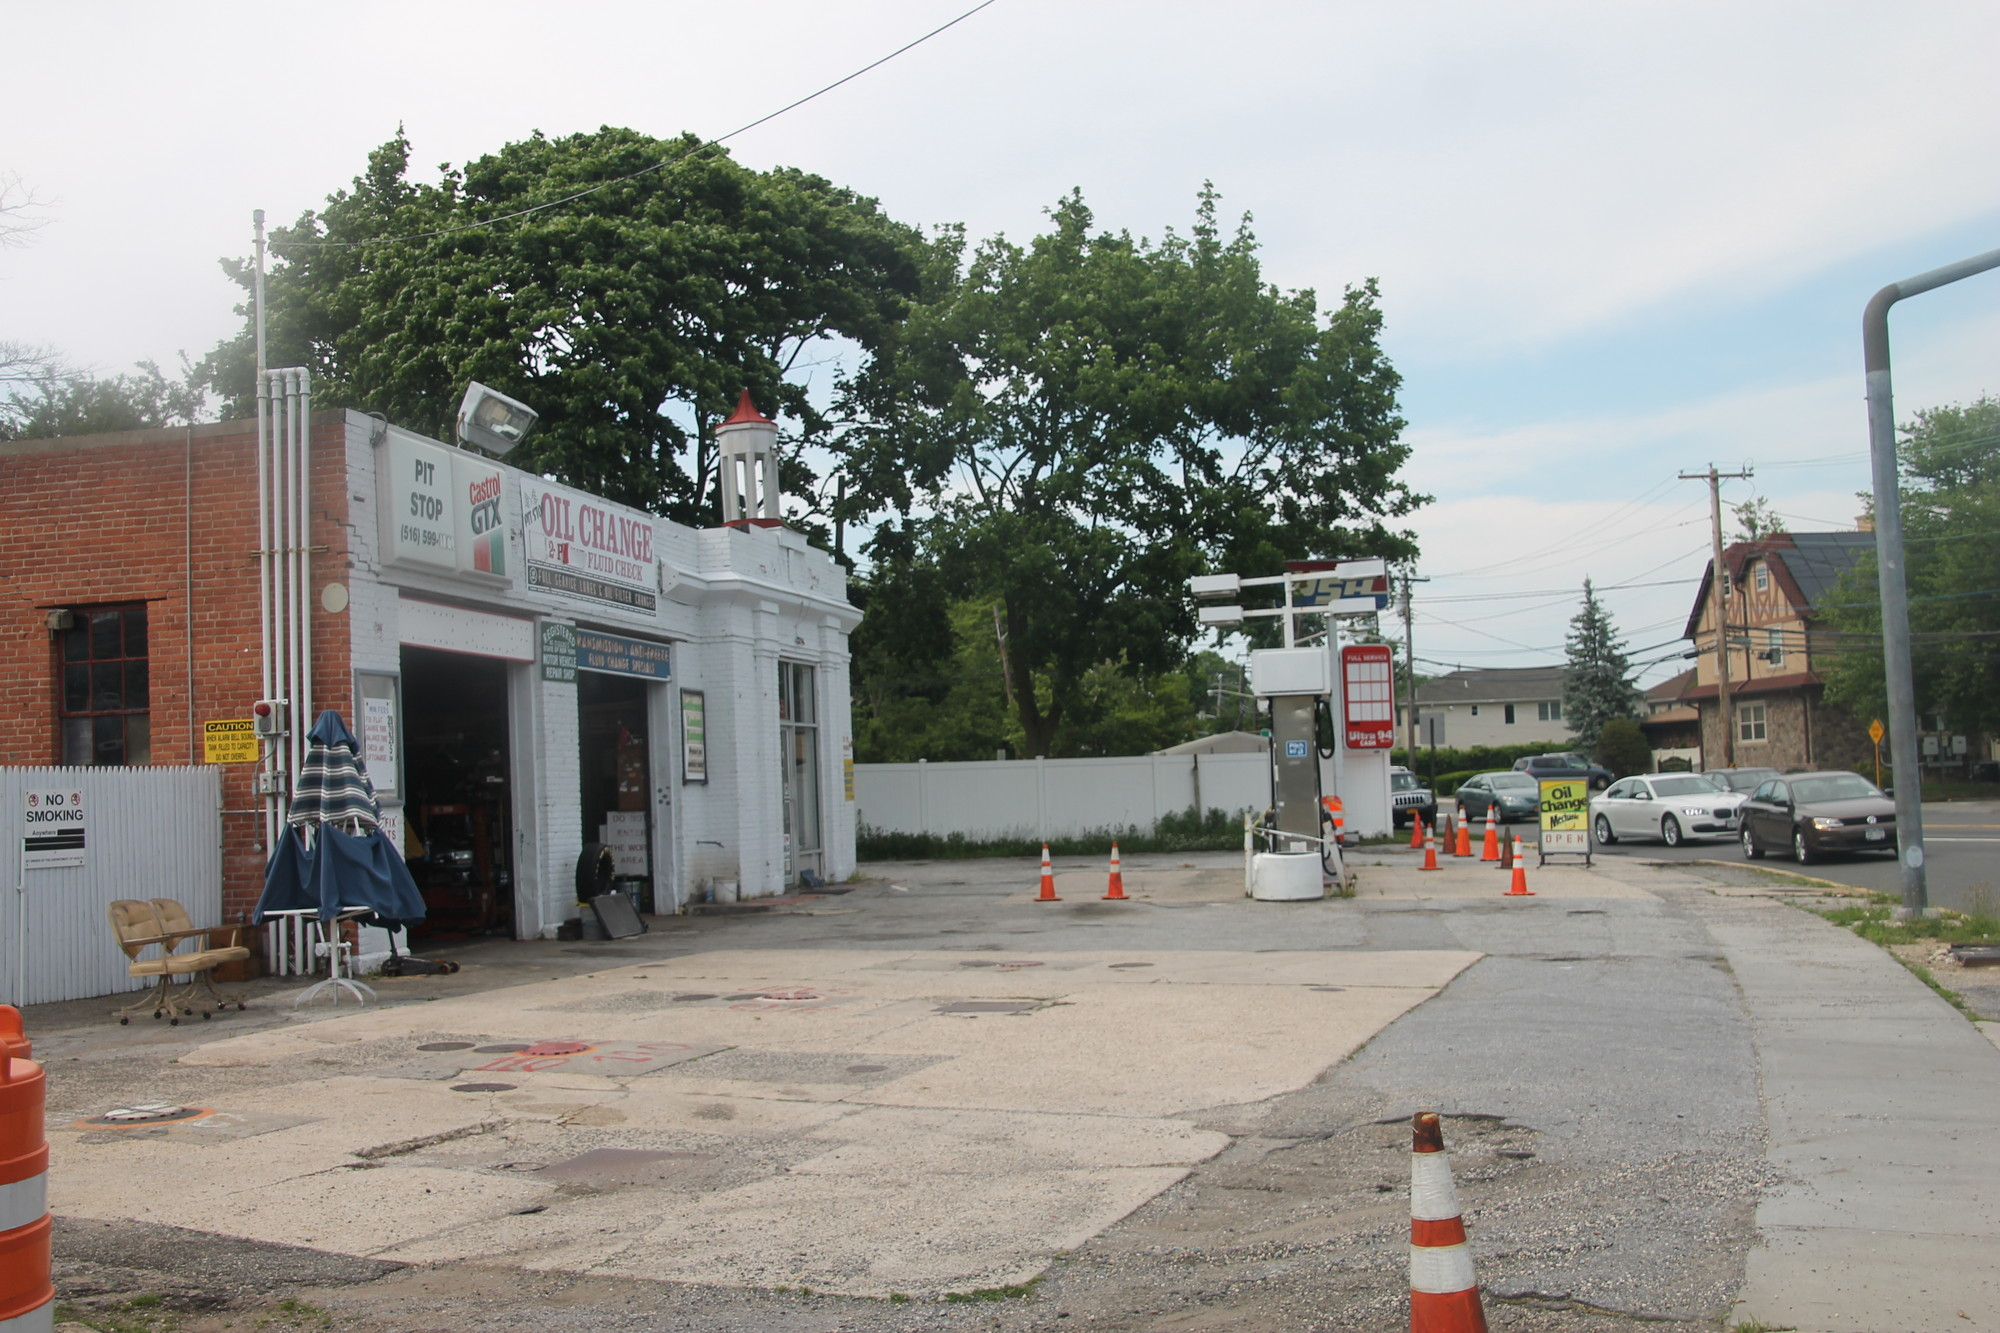 The Hempstead town board is still considering two applications to reopen the Malverne Park gas station by Snuggle Ventures Inc. — which wants to rezone the property and install four new gasoline storage tanks — while waiting for further testimony.